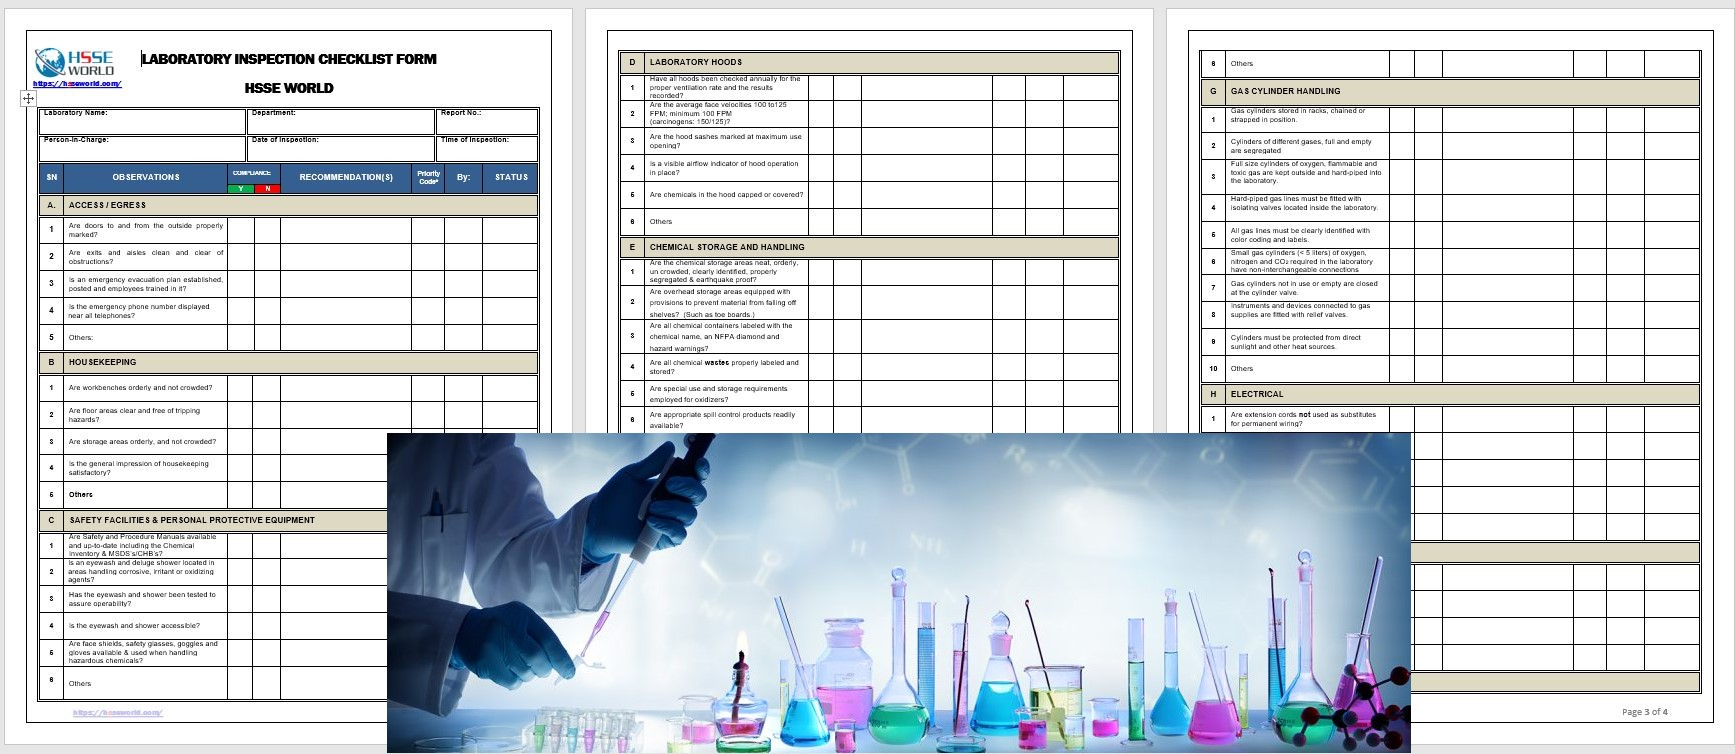 Laboratory Inspection Checklist Form